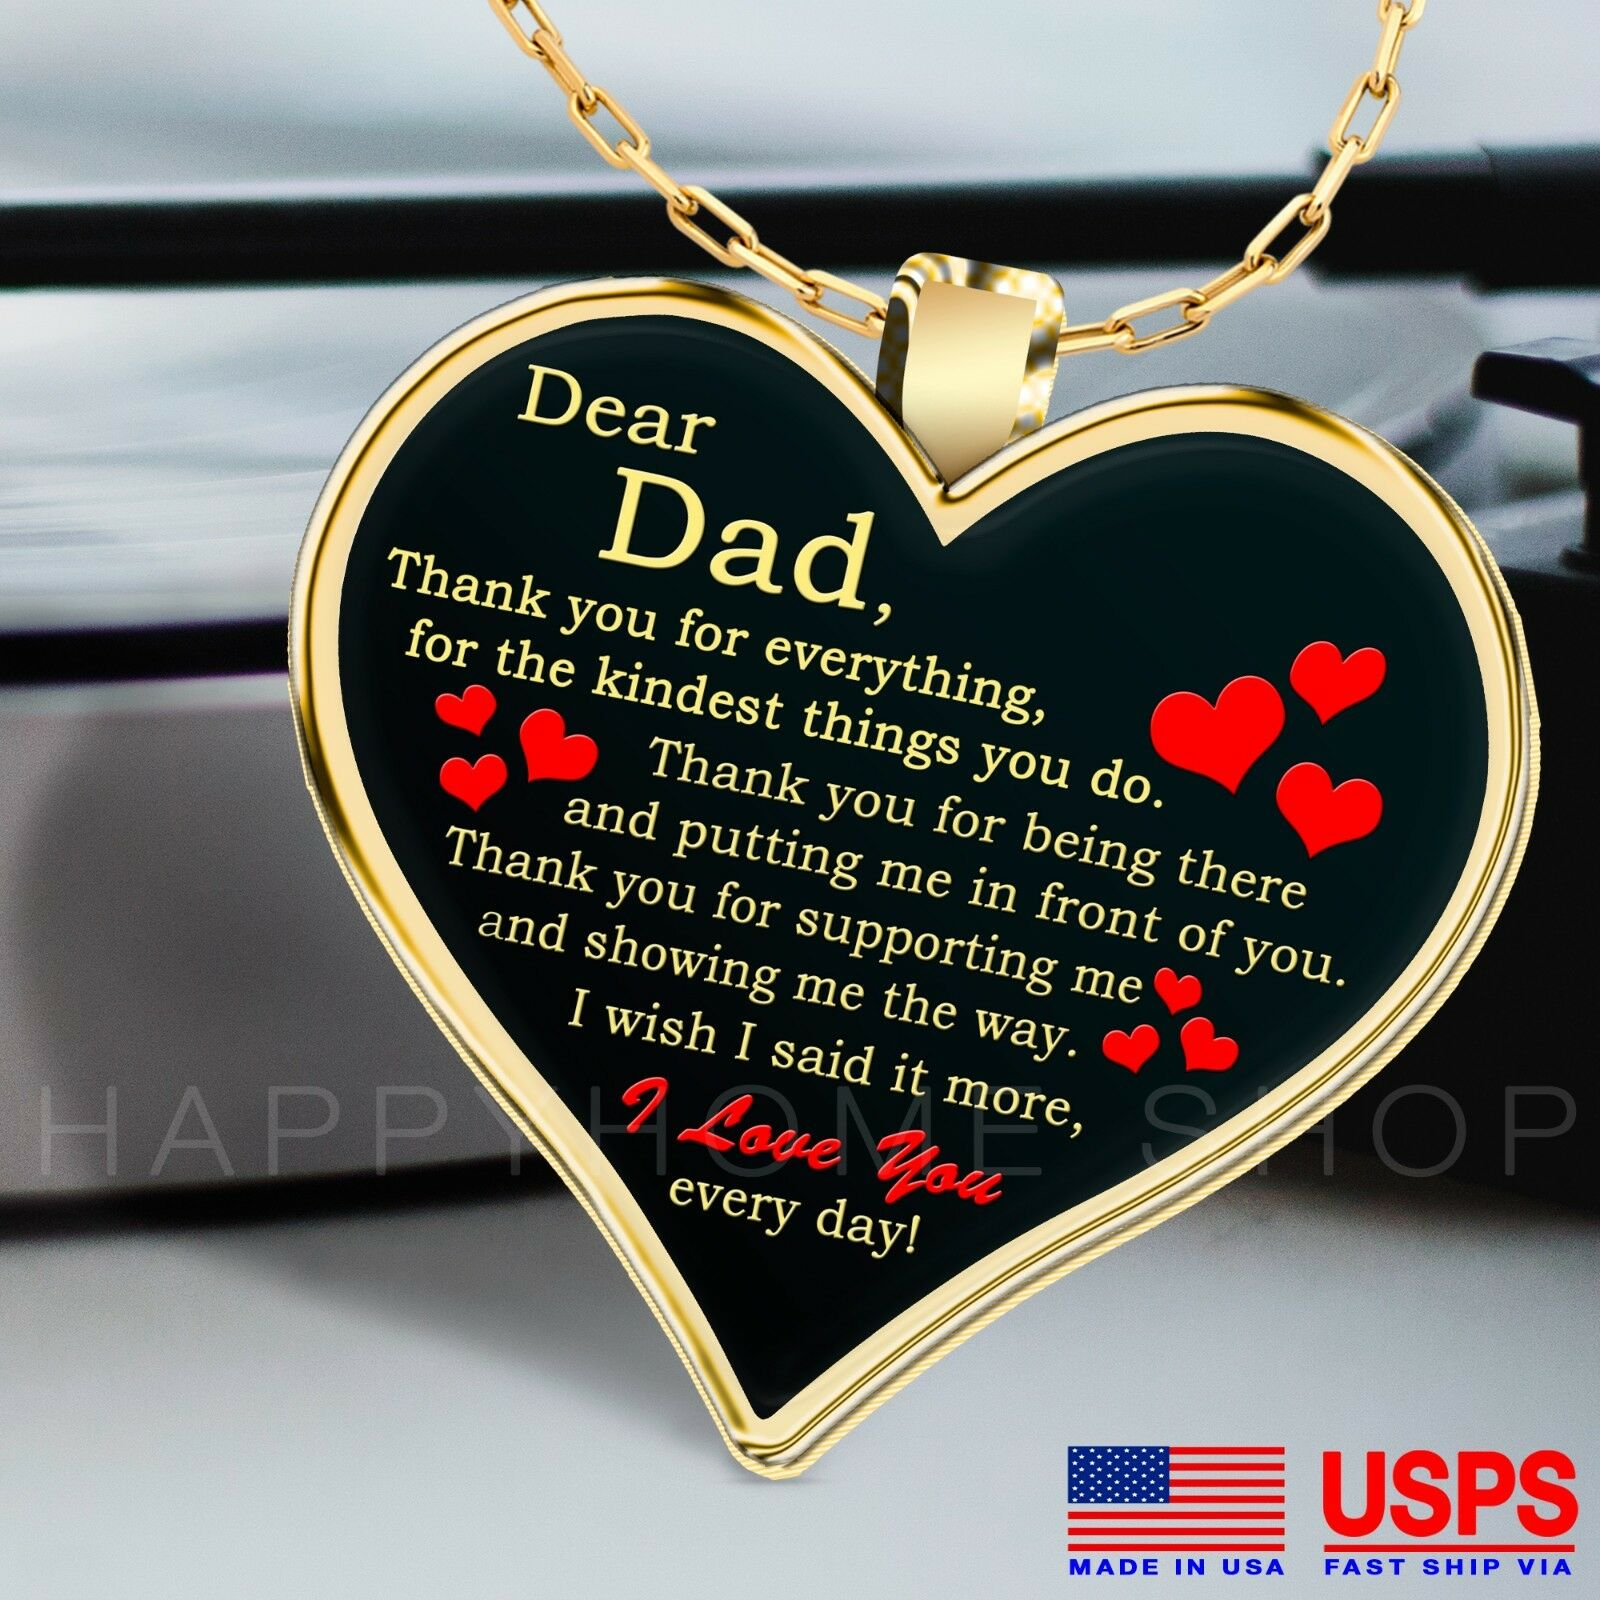 Father\u2019s Day gift Dad gift Gift from daughterson charm Father\u2019s Day Bracelet Gift Best dad gift I love you Dad Grandpa Gift